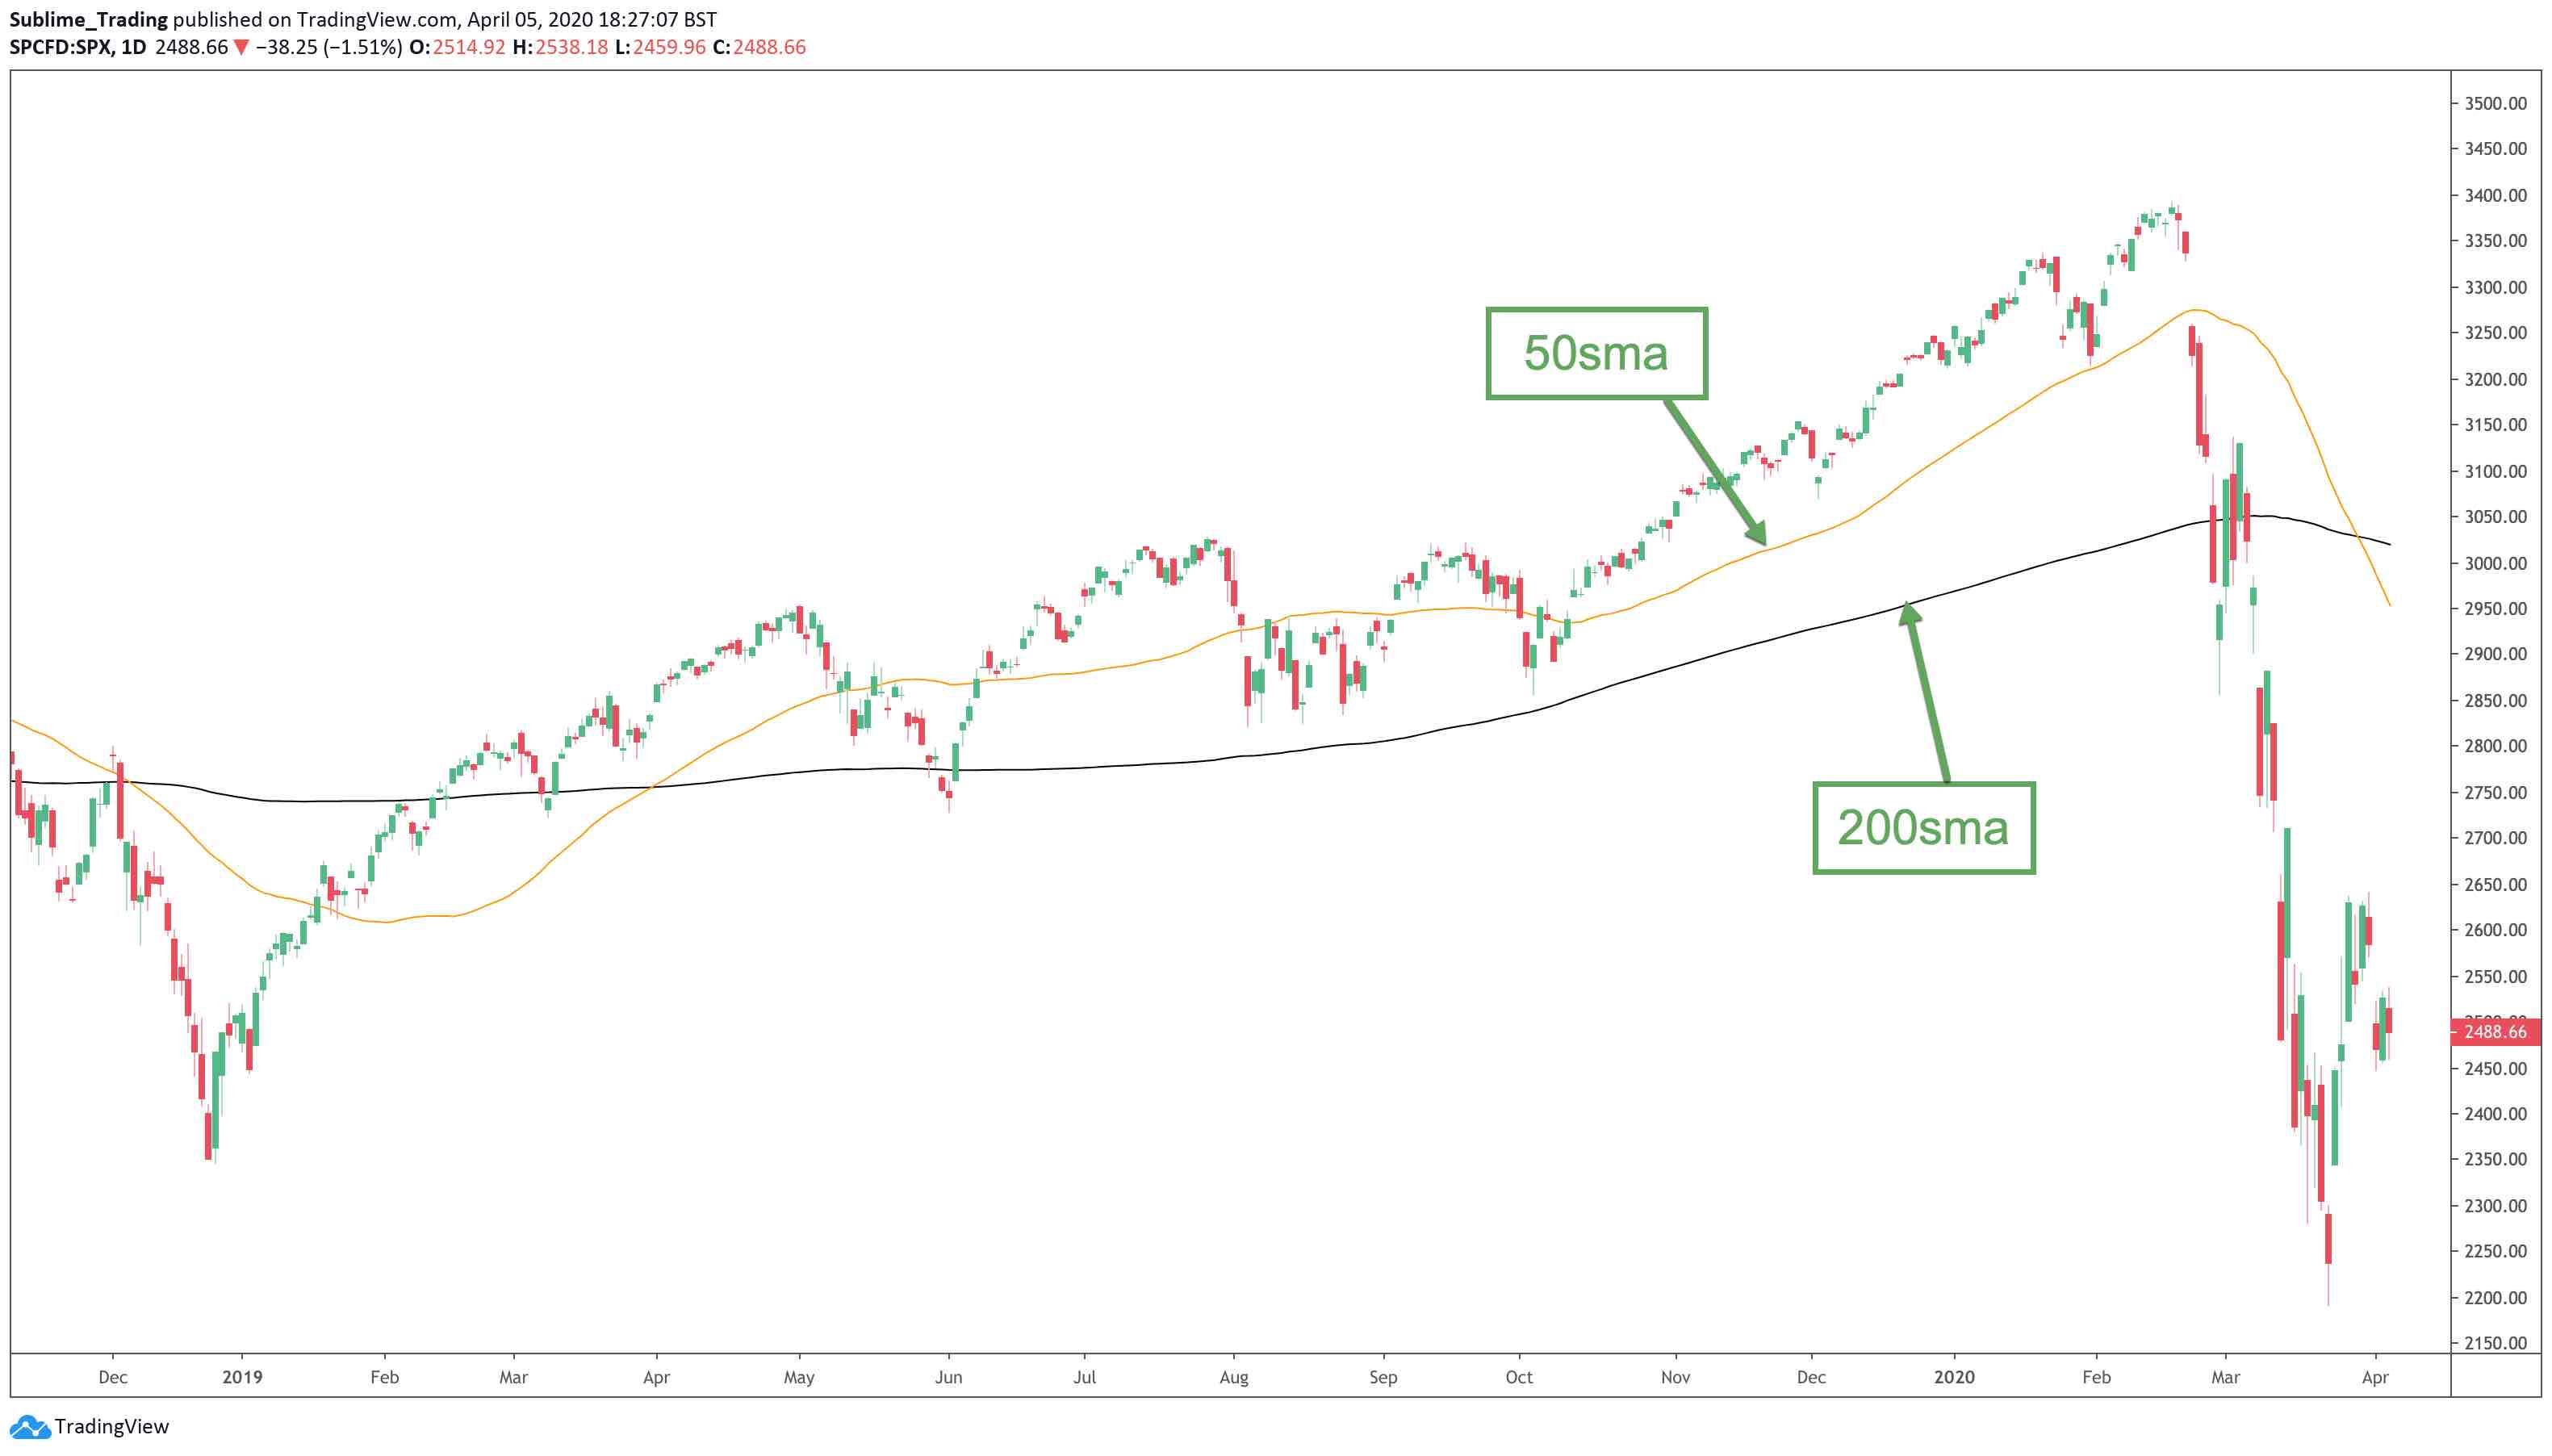 The daily timeframe showing the 50sma and the 200sma